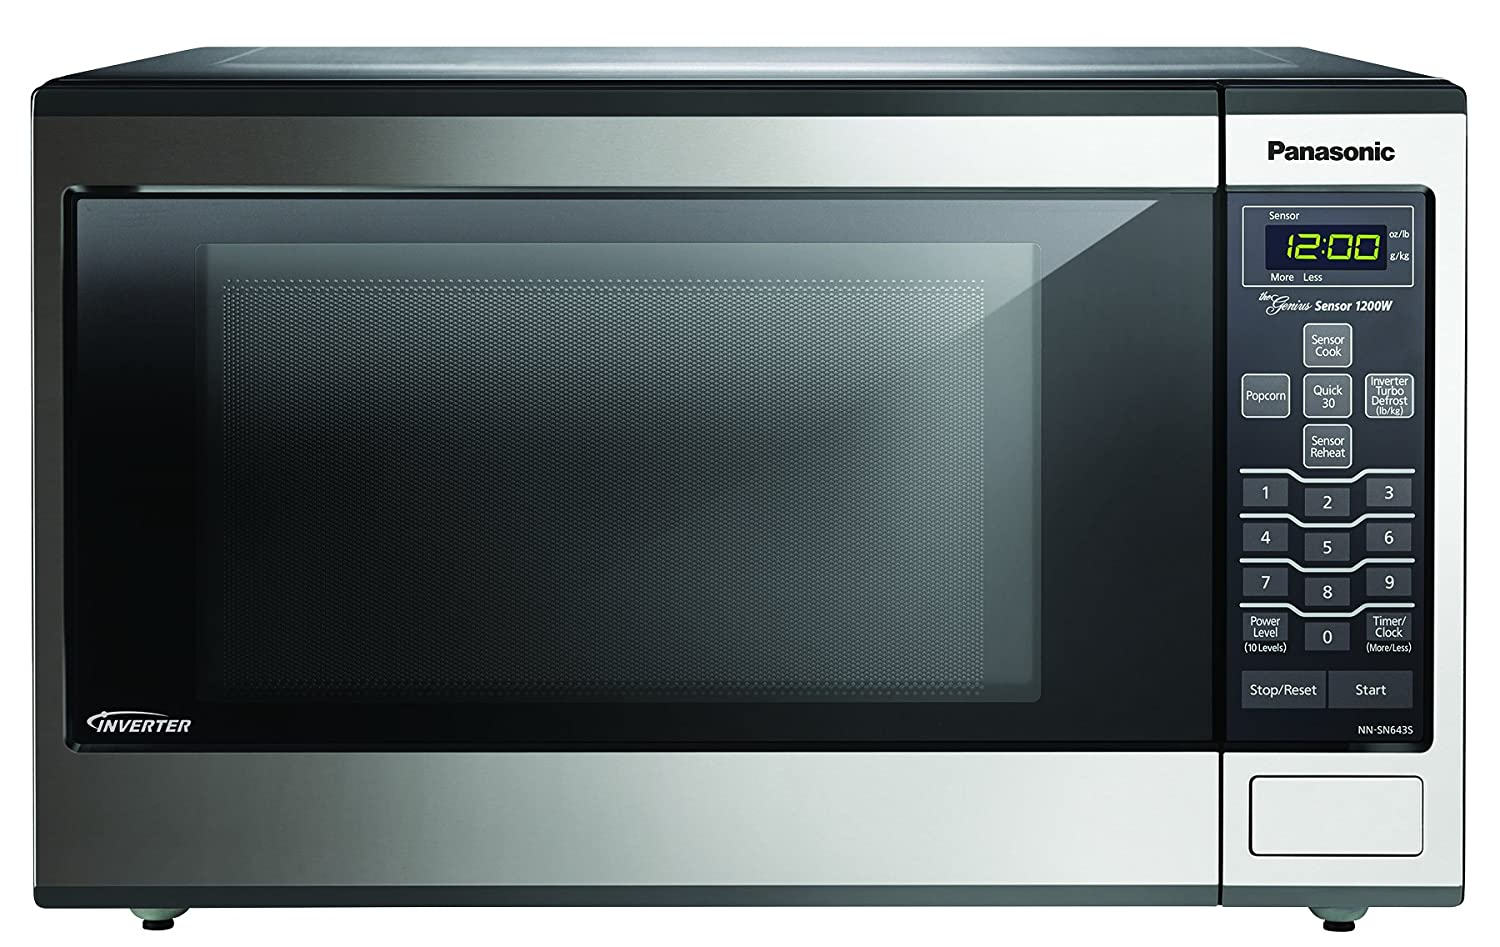 Ft Panasonic 1200w 1 2 Cu Countertop Microwave Oven With Inverter Technology Nn Sn661s Stainless